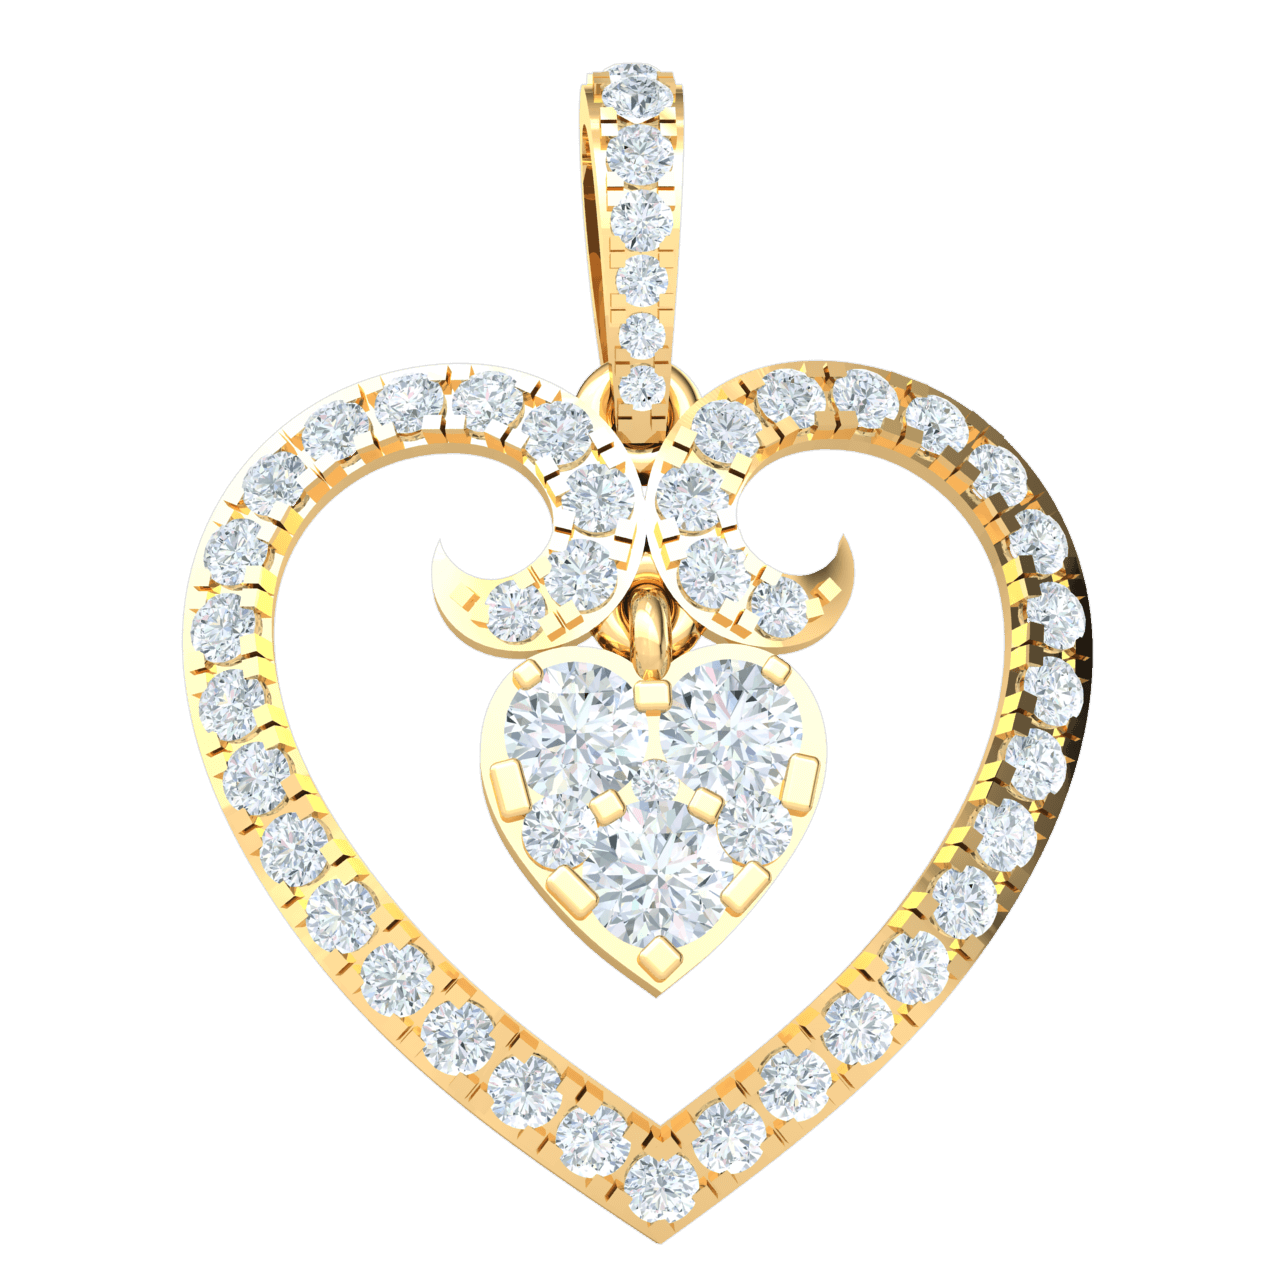 0.82 Ct IJ SI2 Dazzeling Heart Shaped Real Pendant Covered In Exquisite White Diamonds With Diamond Covered Heart Hanging Inside in 14 kt Gold